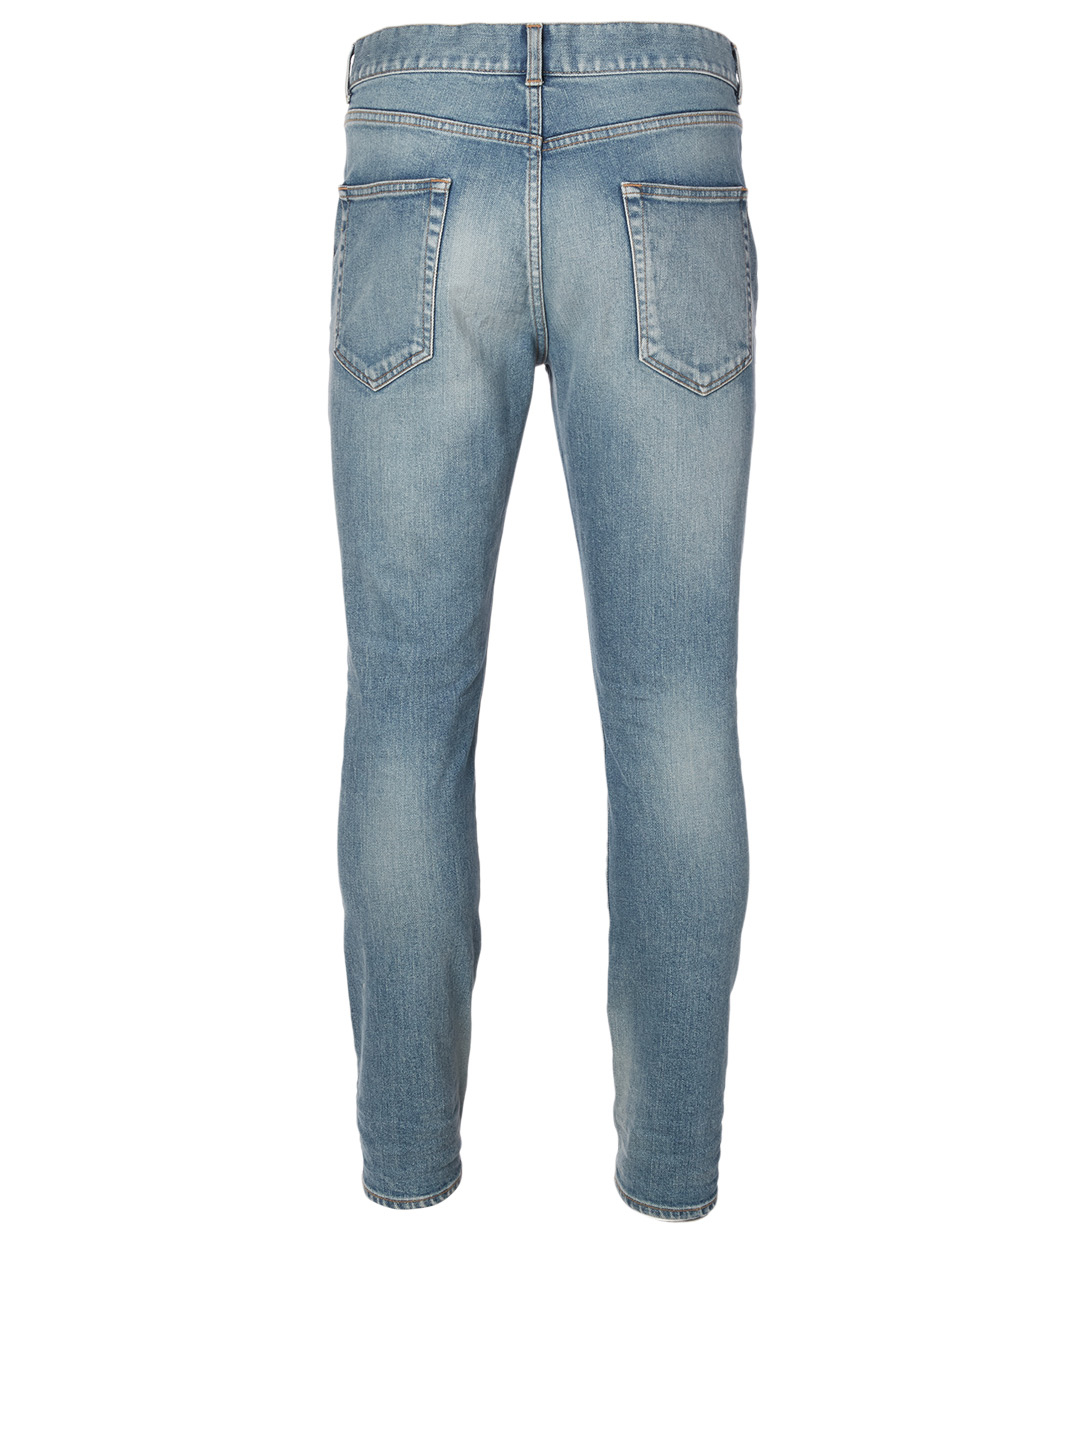 SAINT LAURENT Stretch Skinny Jeans Men's Blue